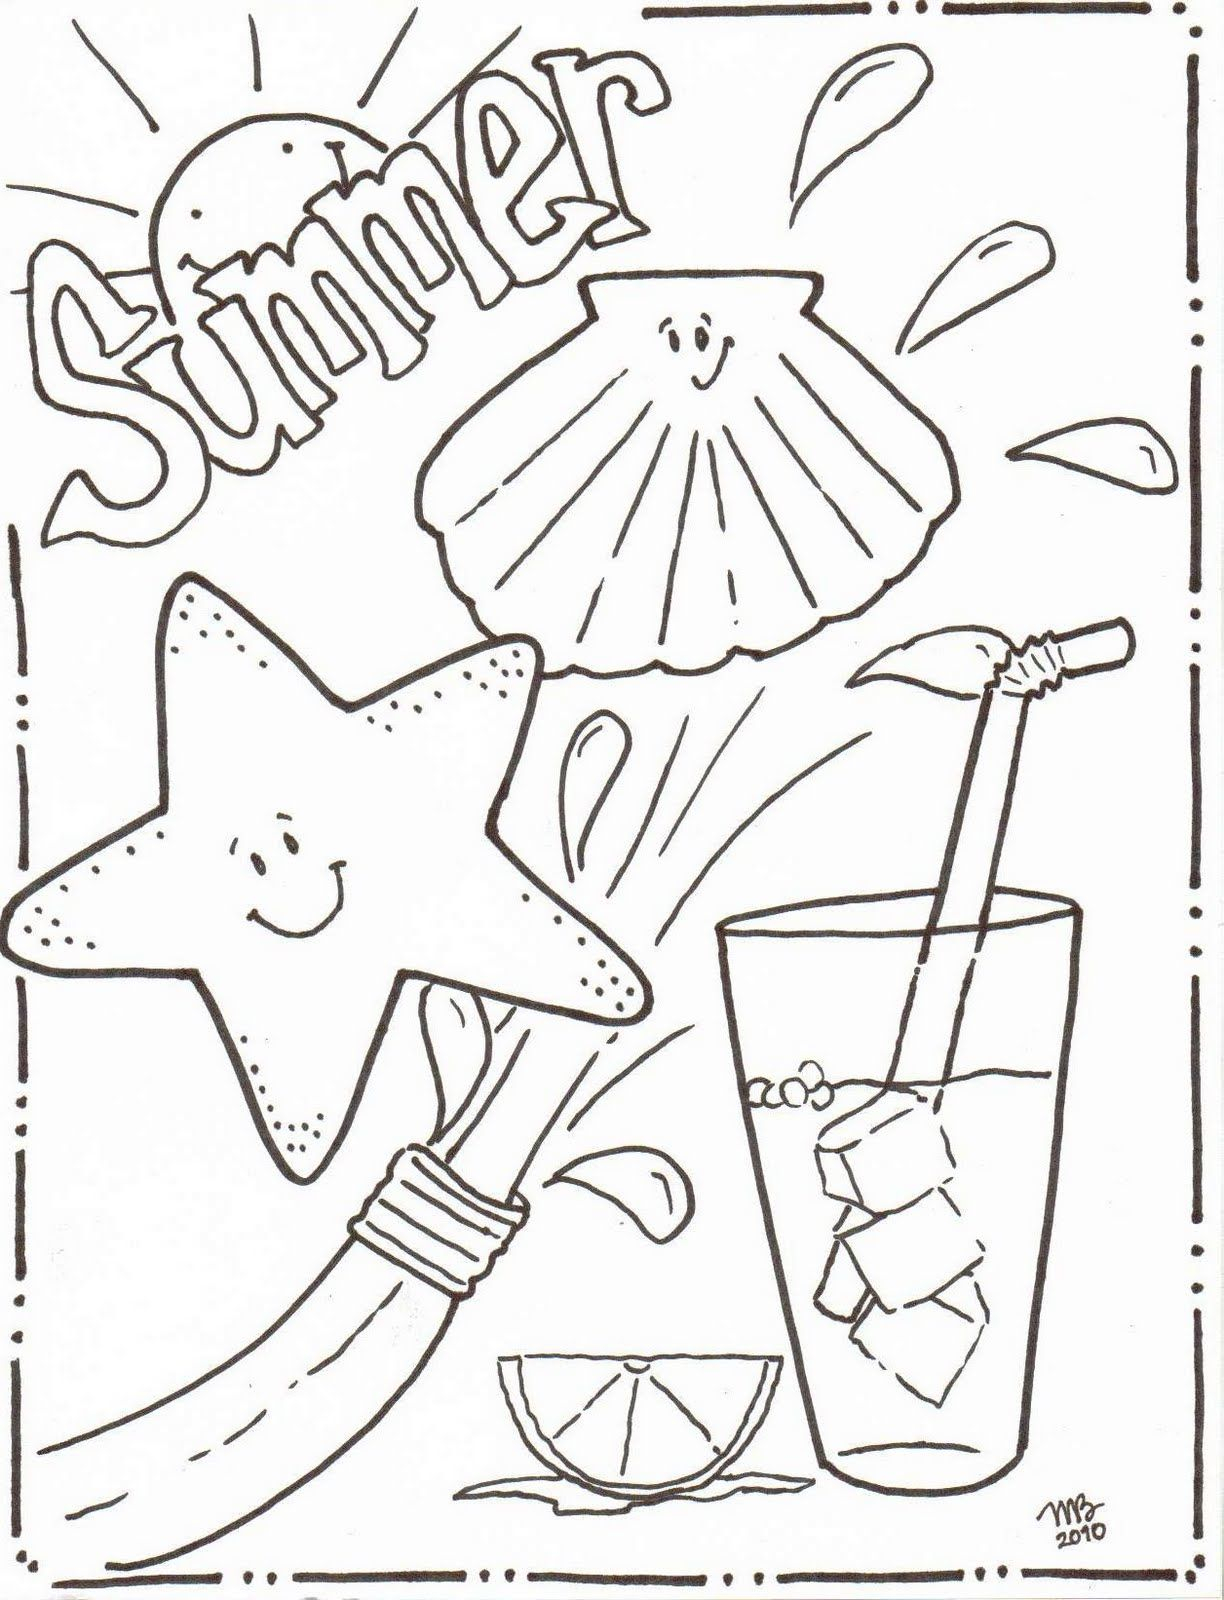 Summer Preschool Coloring Pages Collection 20b - Save it to your computer